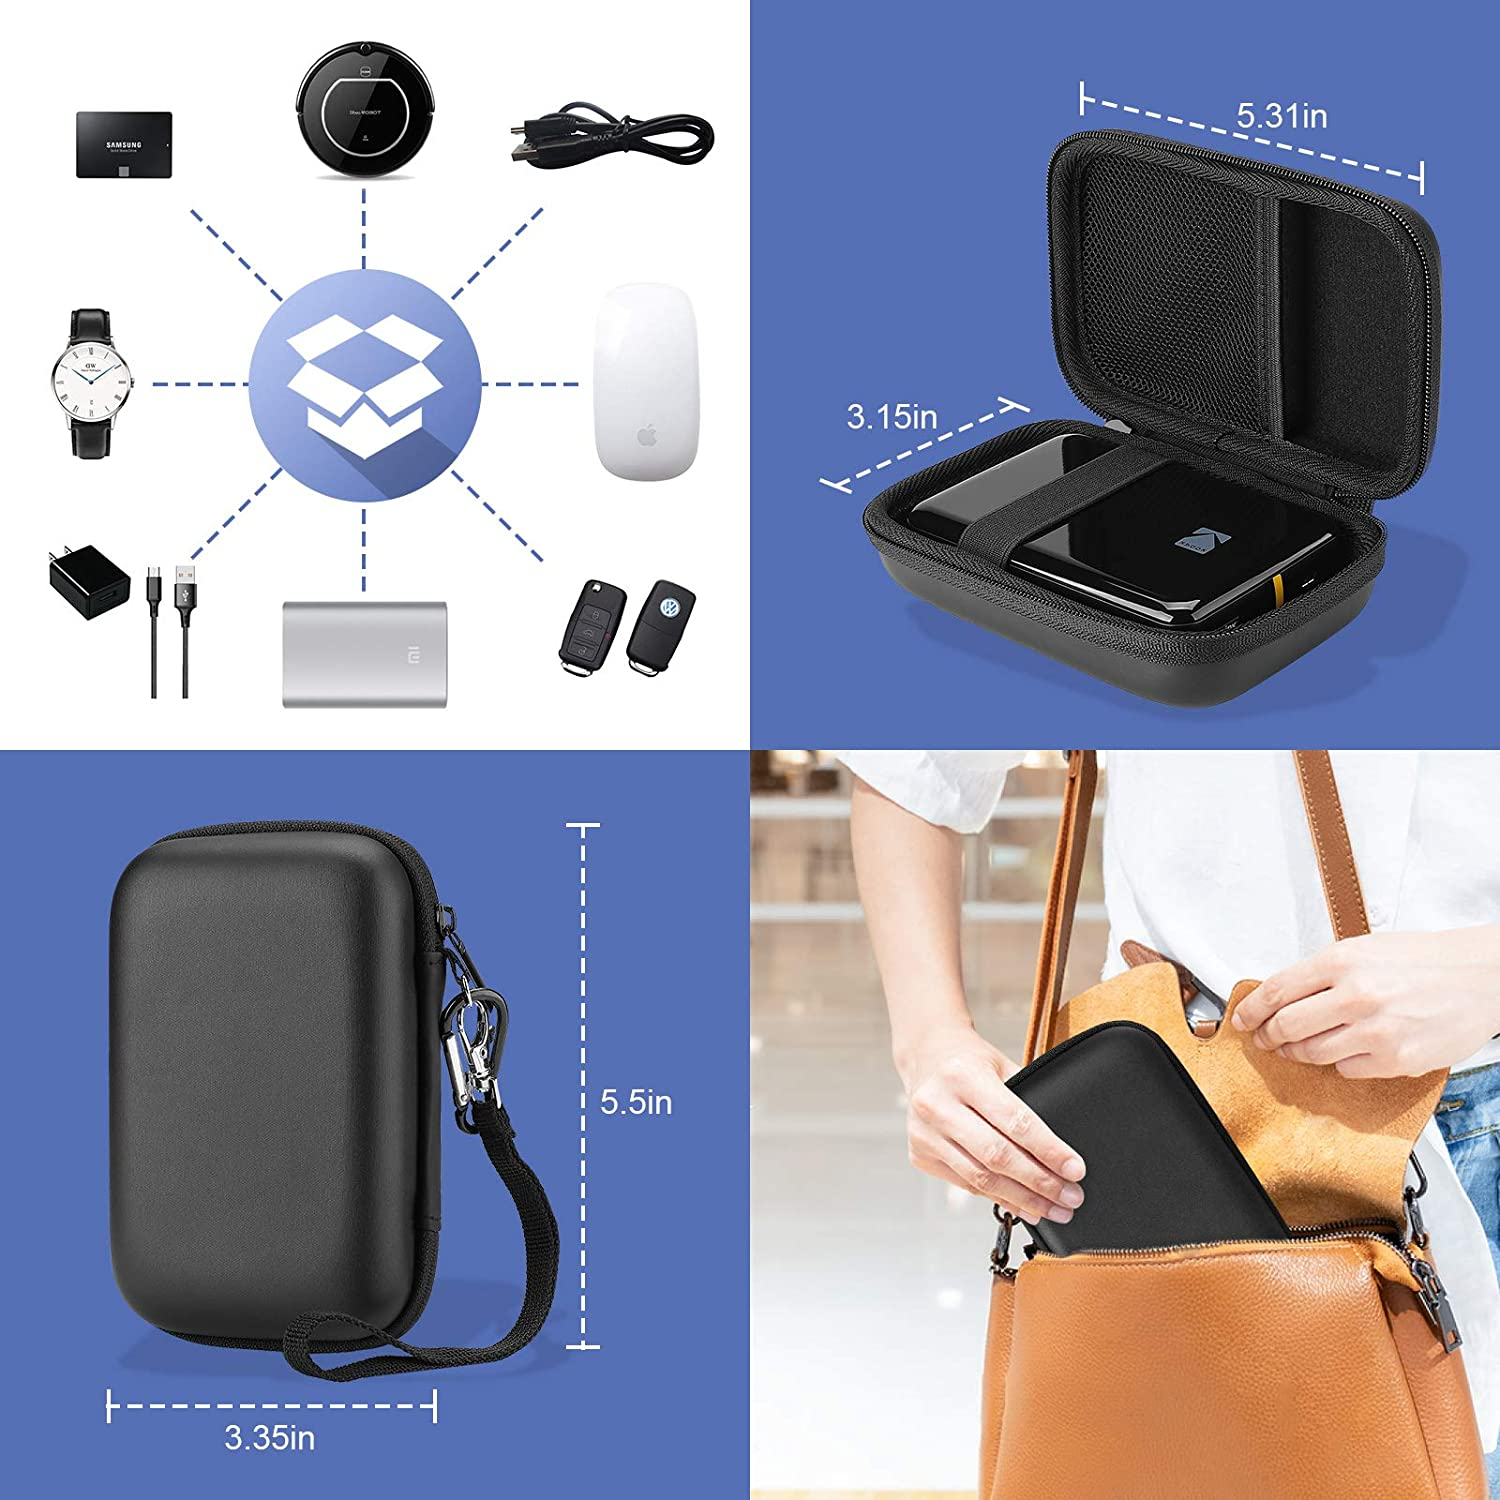 Canon Ivy Mobile Mini CLIQ Carrying Case | ProCase